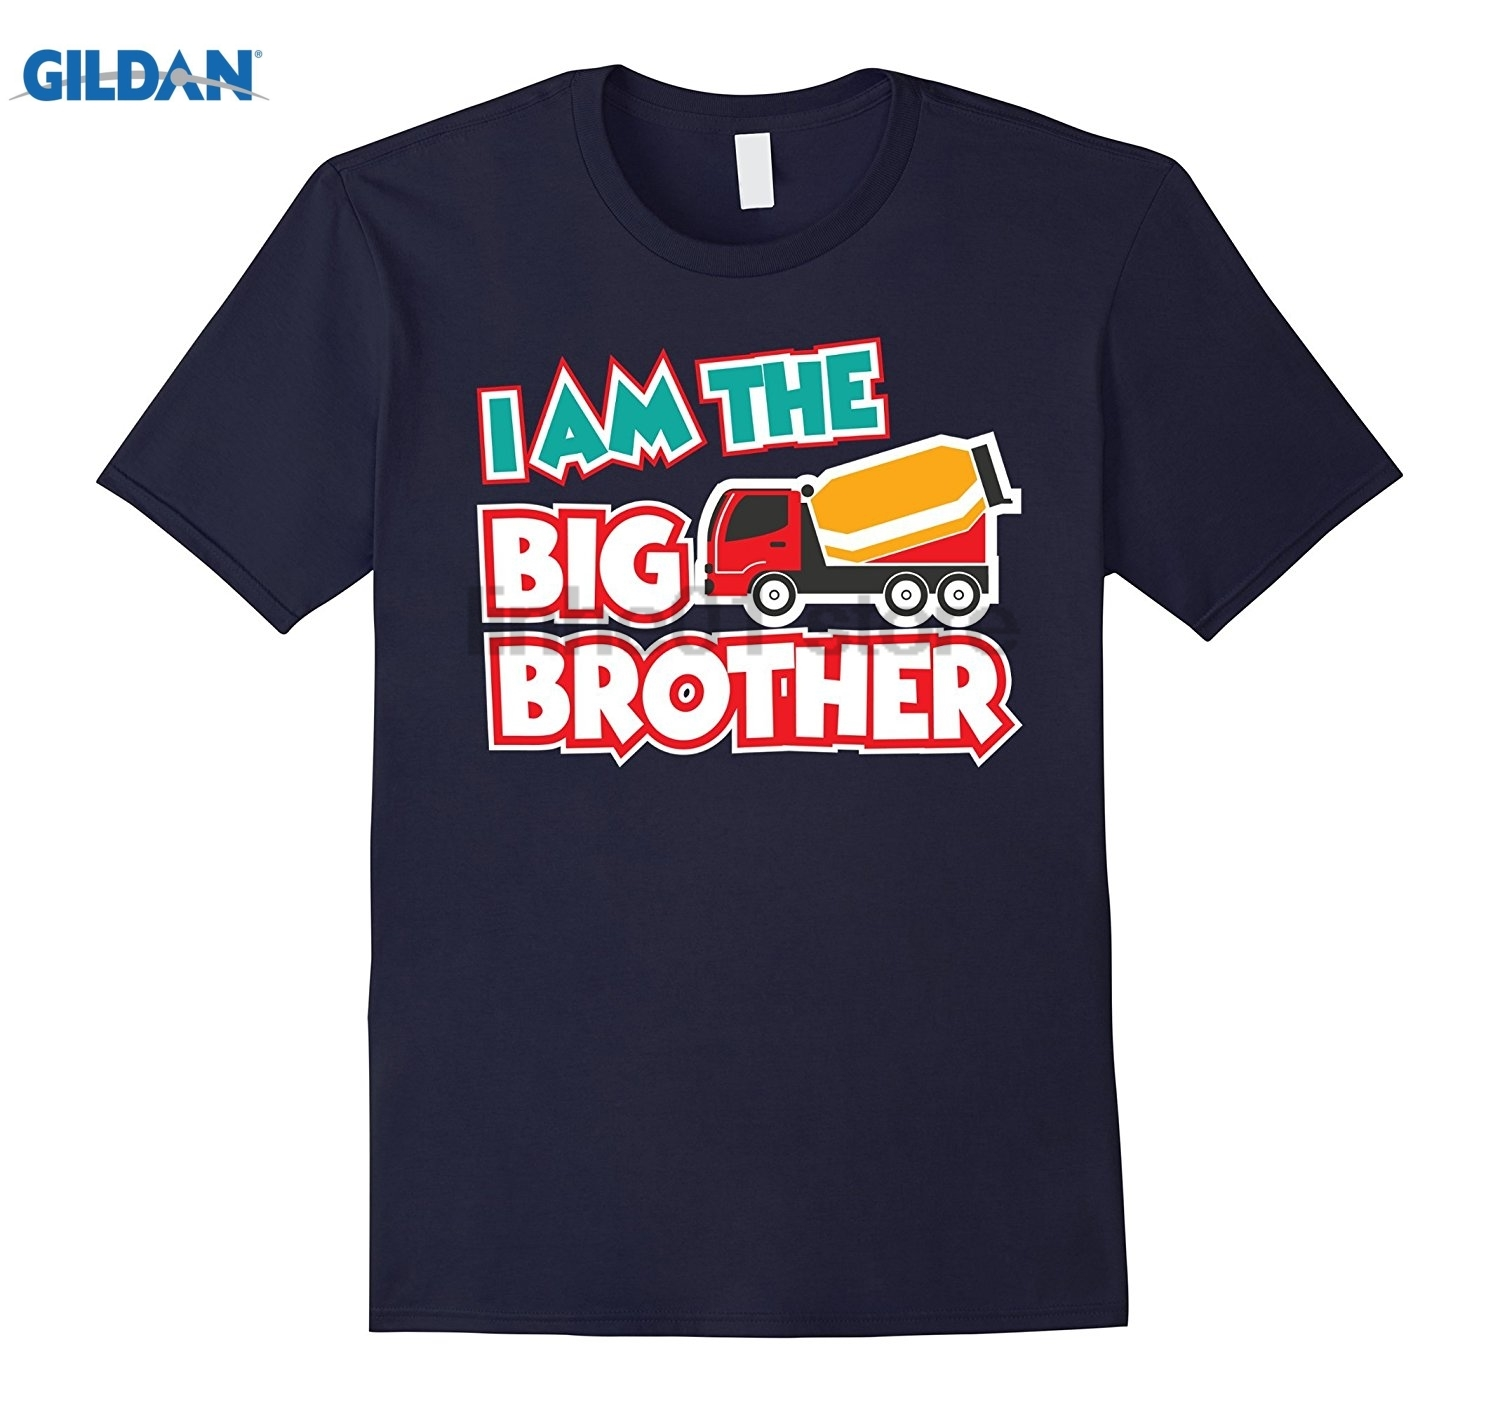 GILDAN Im The Big Brother Shirt - Truck Shirts for Kids Dress female T-shirt dress T-shirt